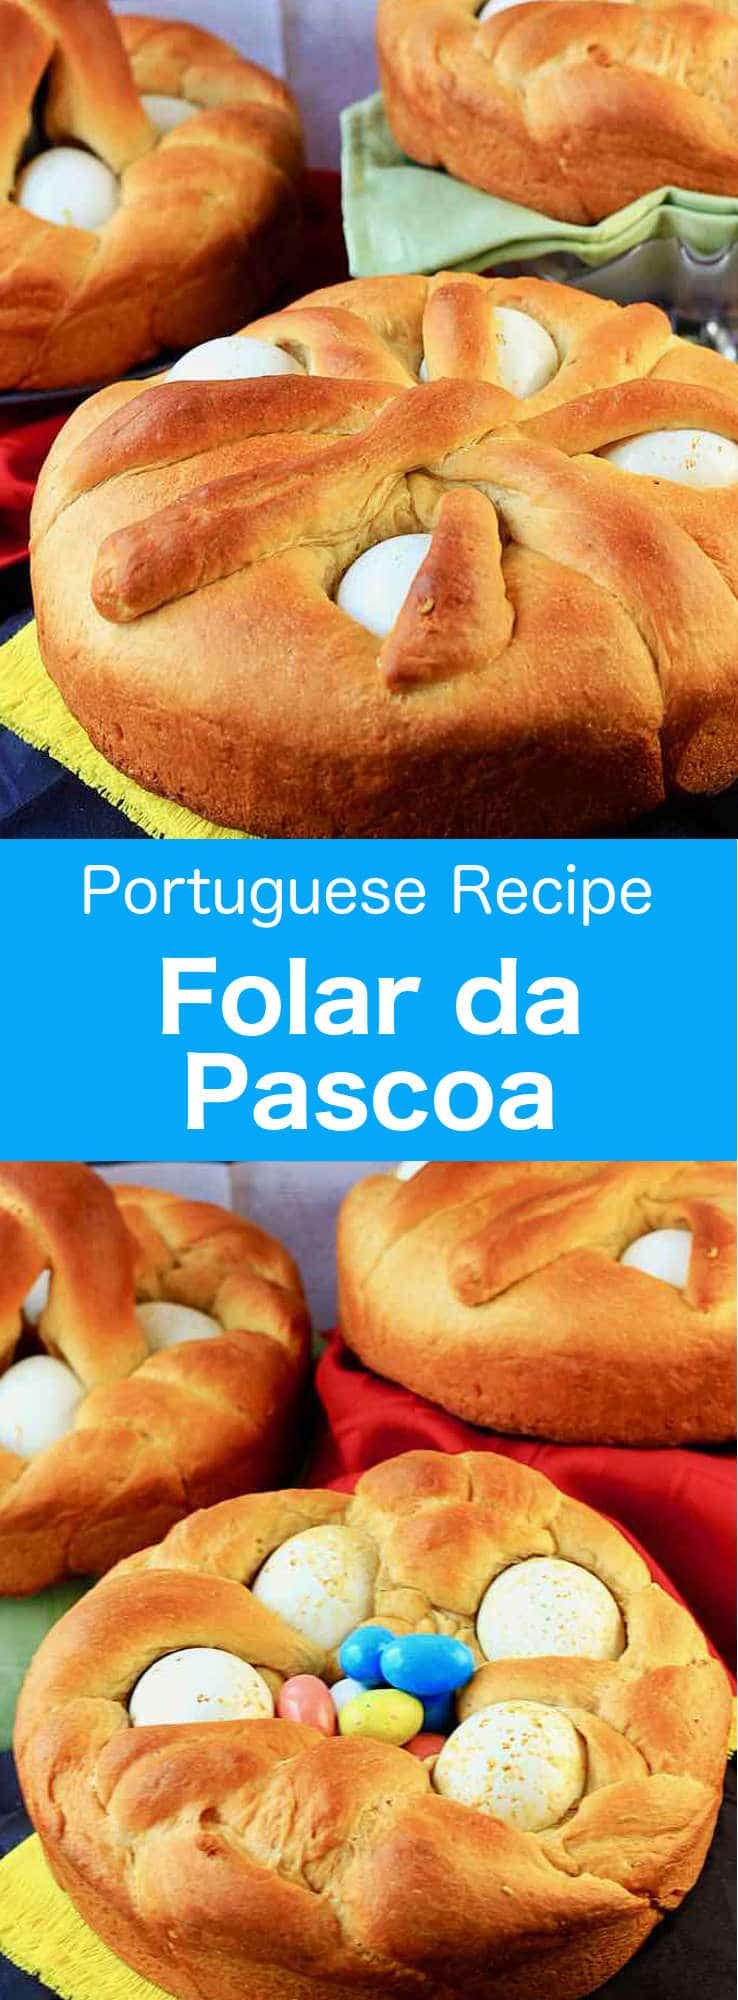 Folar da Pascoa is a deliciously airy Portuguese sweet bread or brioche, that is traditionally prepared for Easter. The eggs at the top symbolize the rebirth of the Christ. #Easter #EasterRecipe #Brioche #Portugal #PortugueseRecipe #Vegetarian #WorldCuisine #196flavors